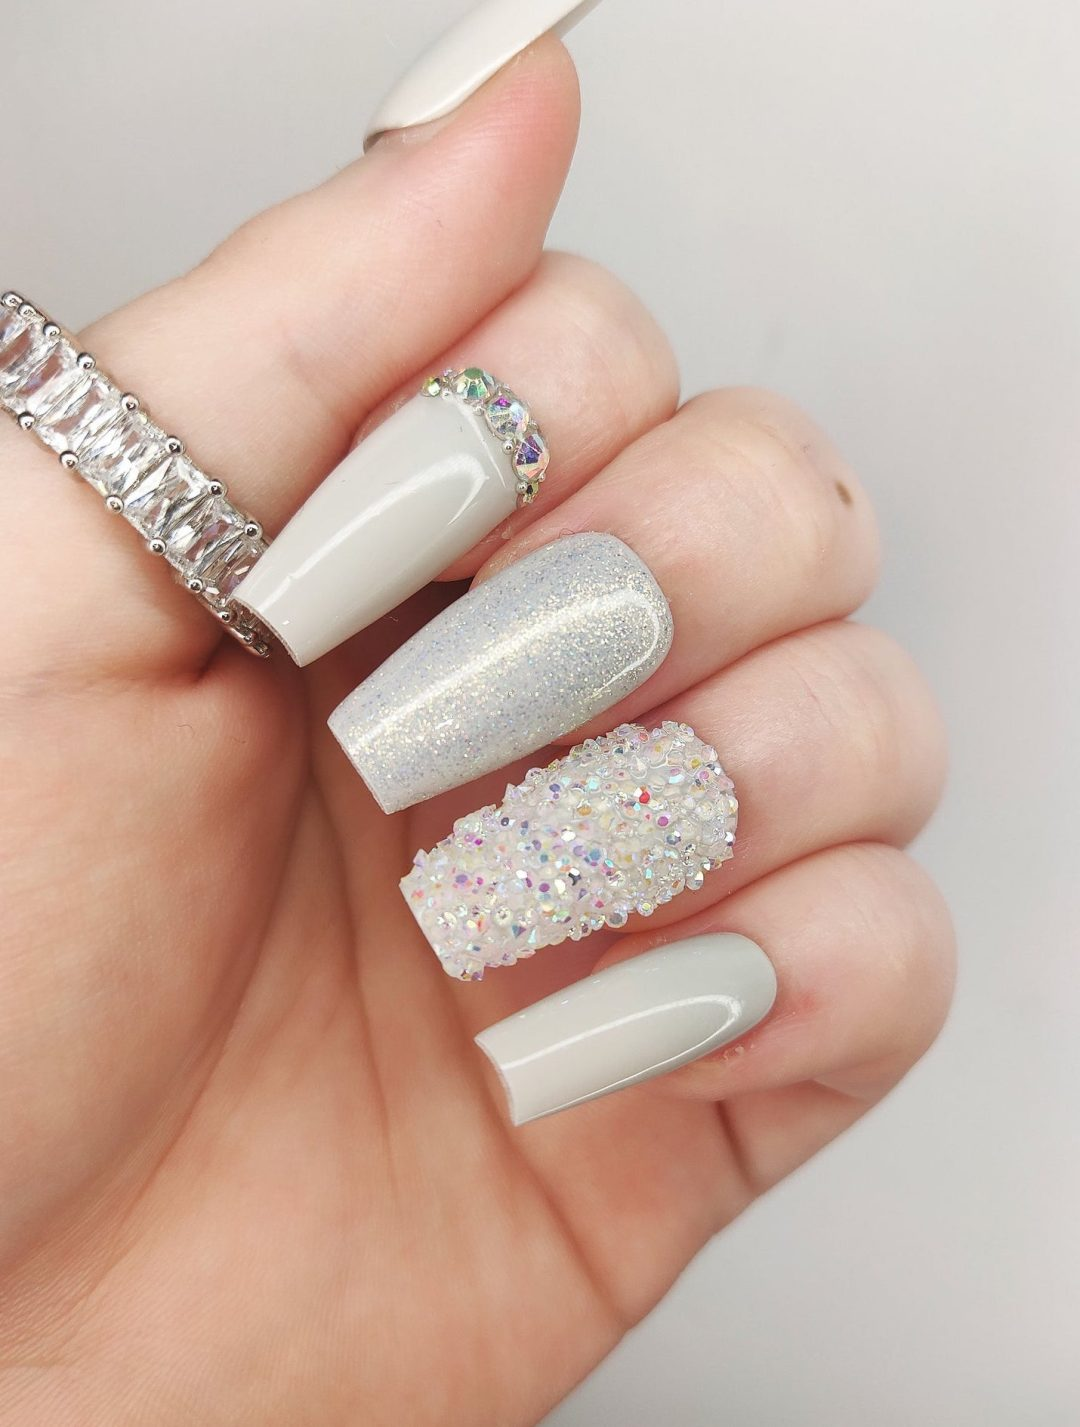 White and light grey coffin nails with glitter